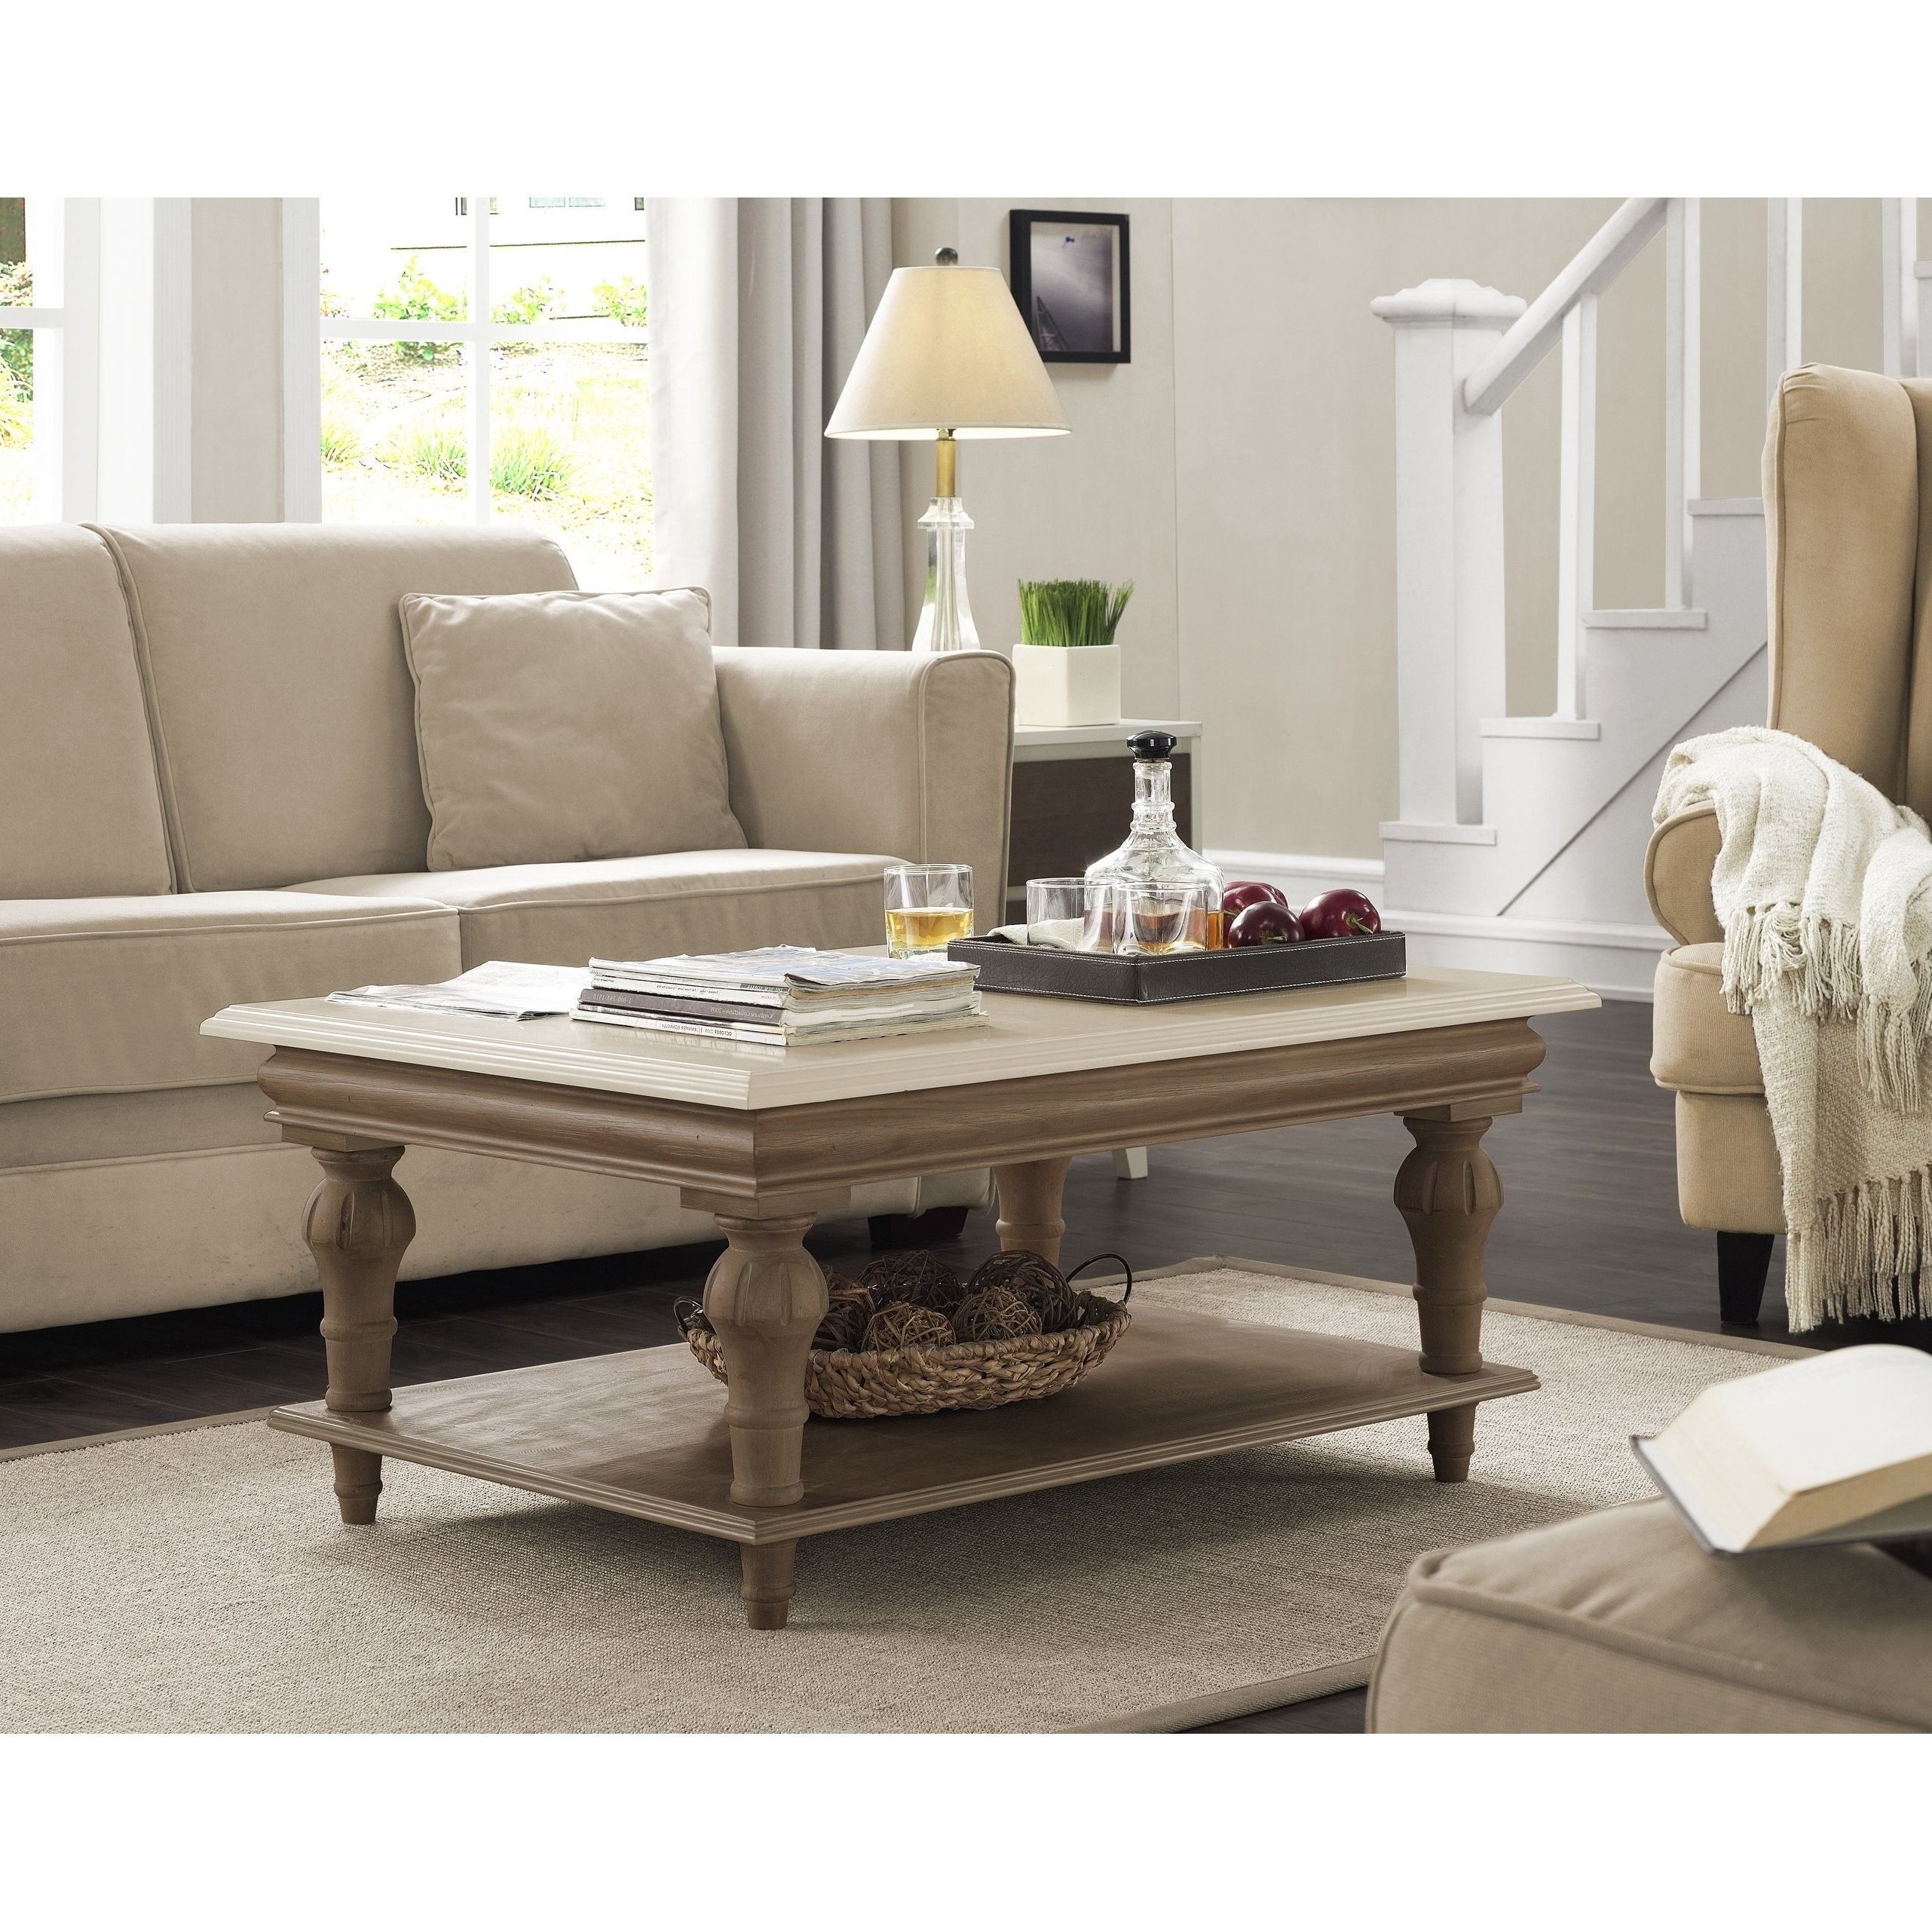 Well Known Element Ivory Rectangular Coffee Tables Regarding Shop Elements Cream Wood Coffee Table – Free Shipping Today (View 13 of 20)